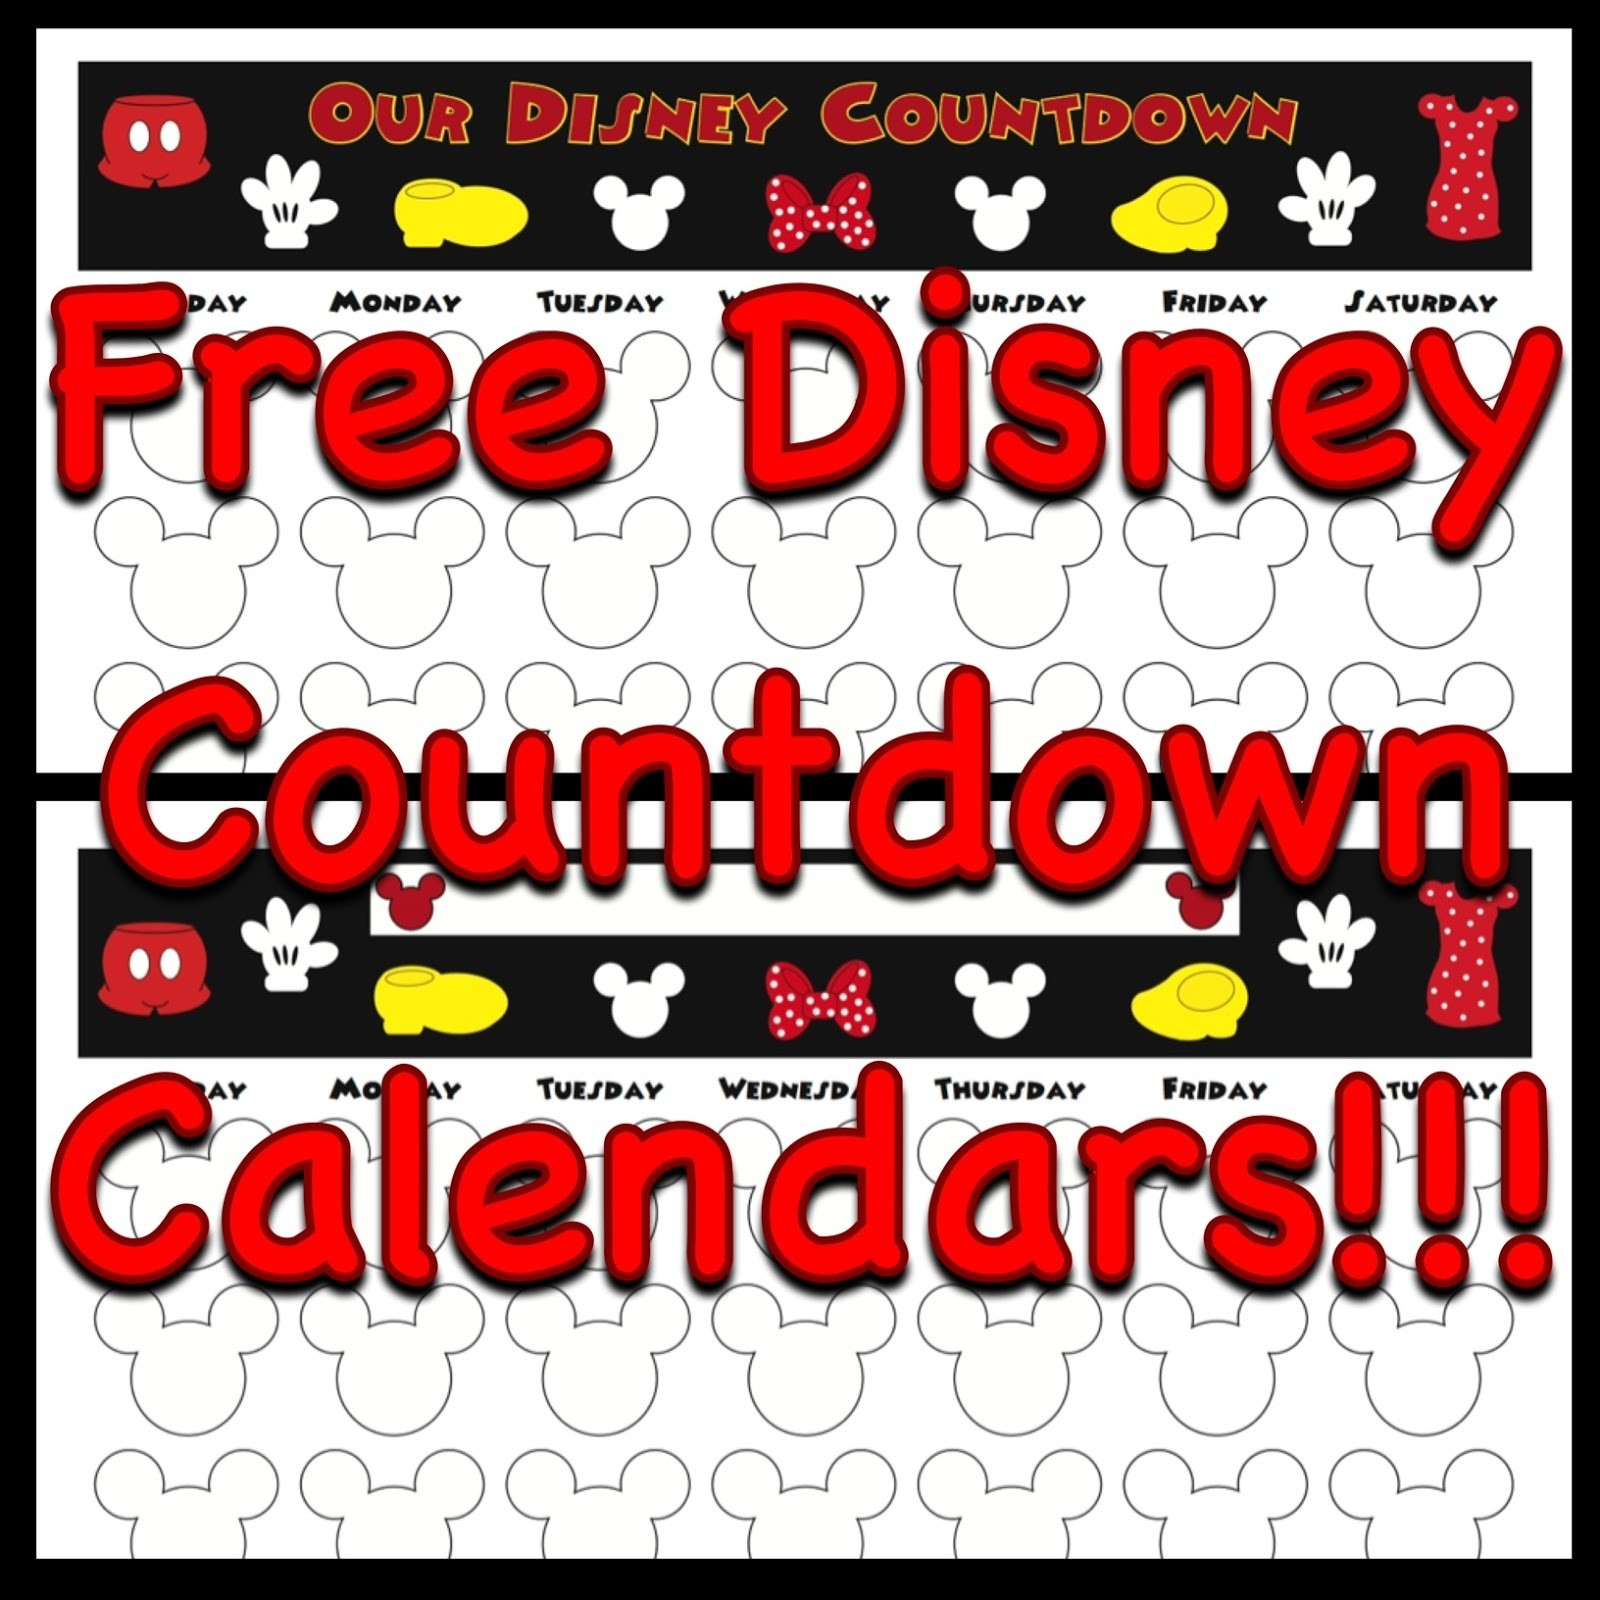 My Disney Life: Countdown Calendars-Countdown To Disney Template